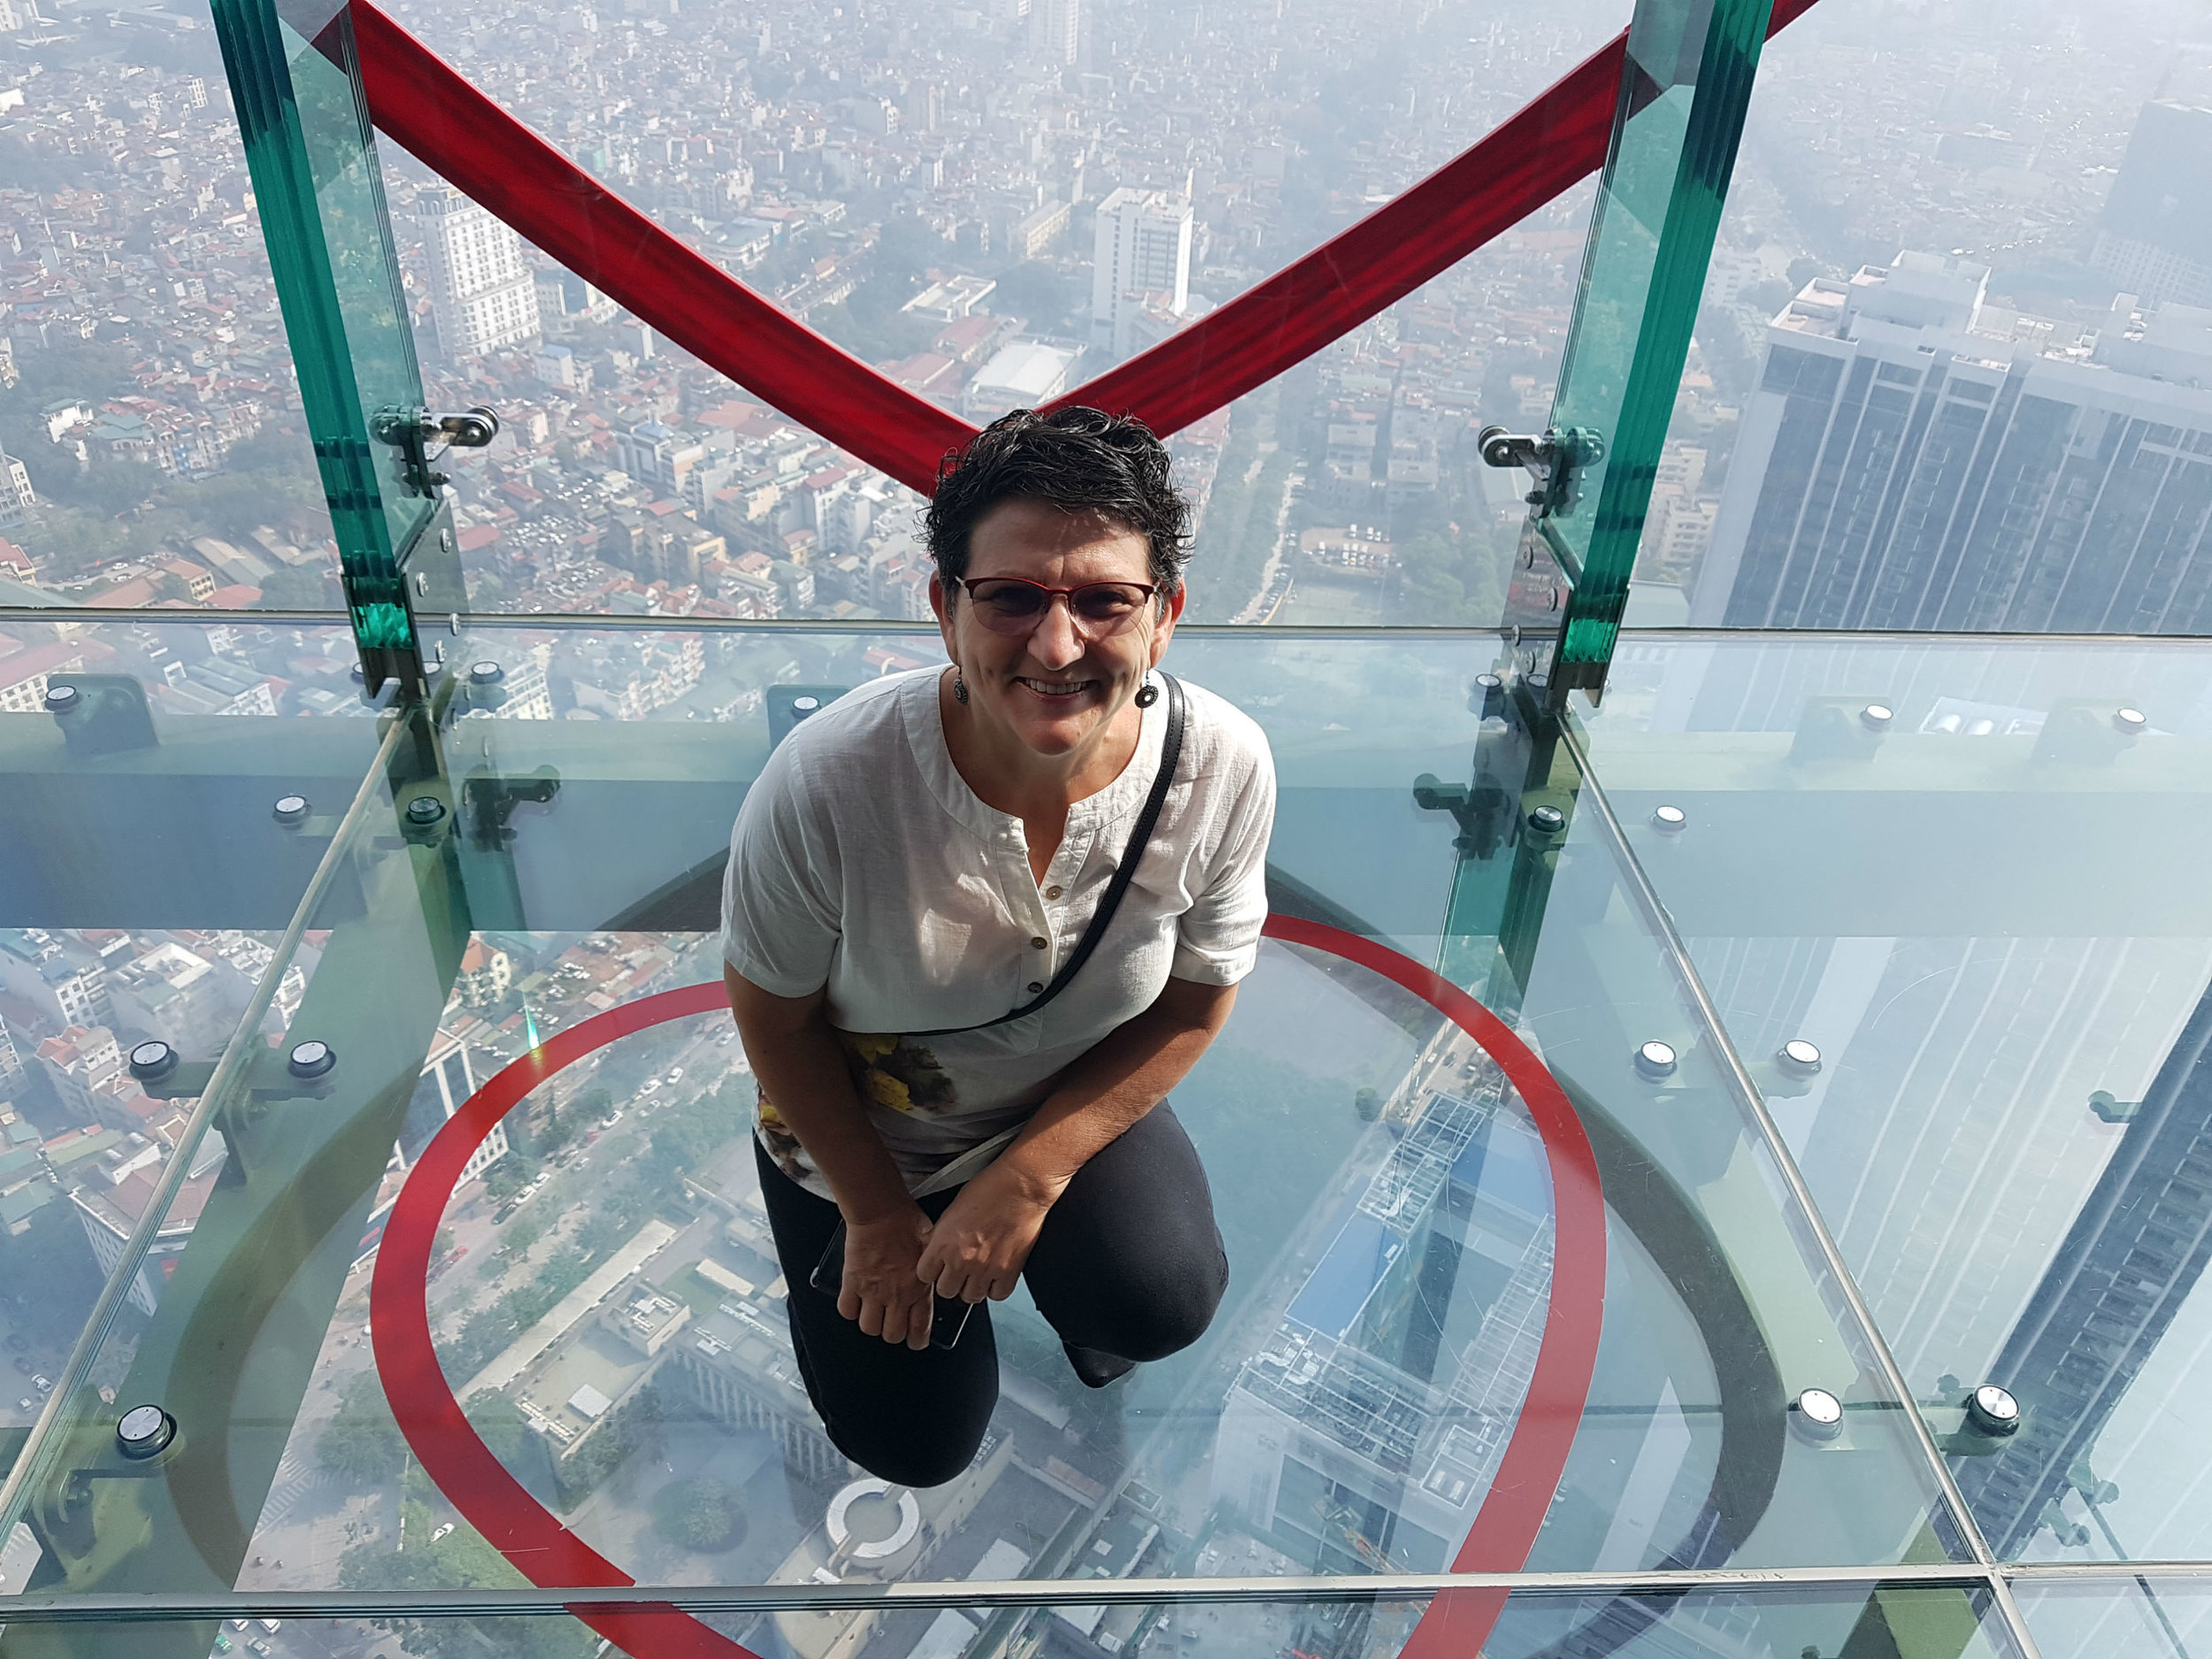 Glass floor 250 meters above the streets in Lotte Centre observation deck